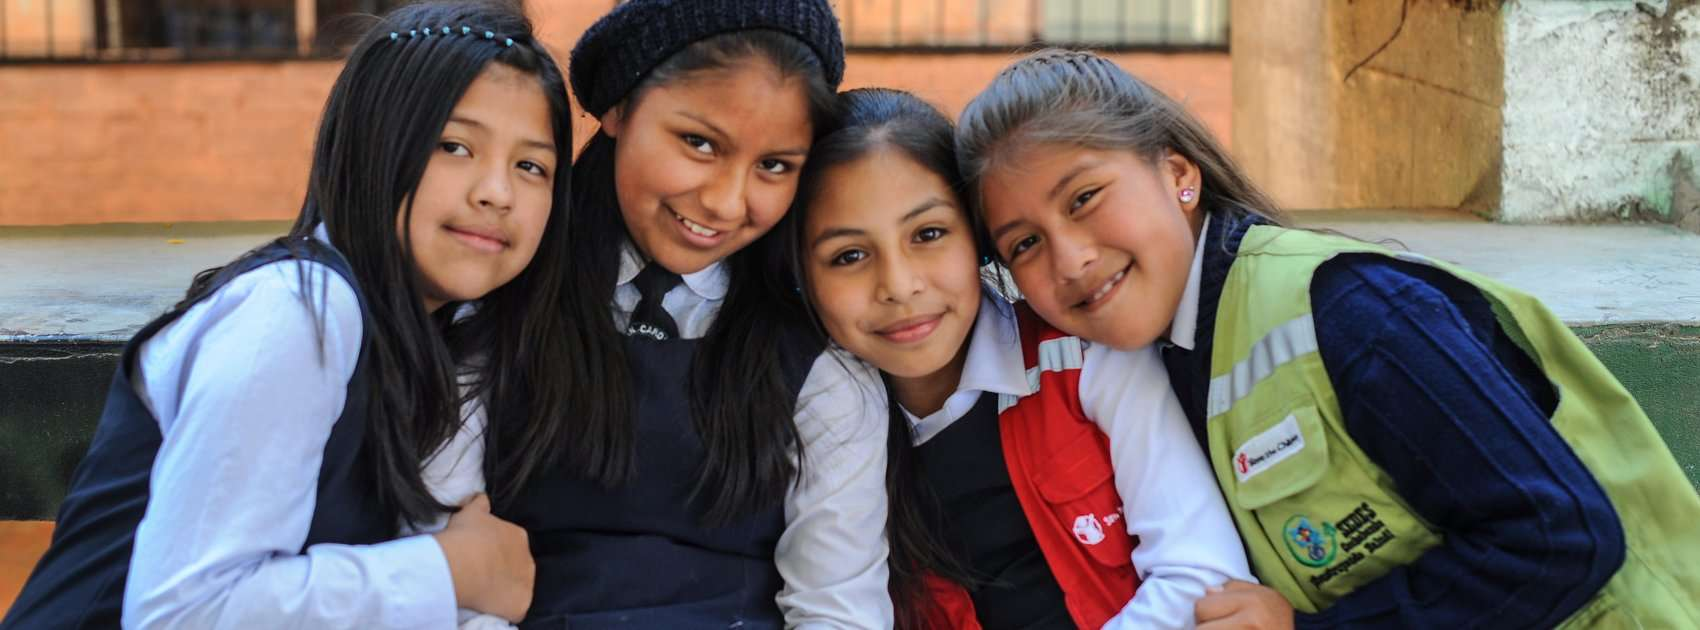 Girls pose for a photograph at a school supported by Save the Children sponsorship programs. Save the Children is working hard in Bolivia to help kids stay healthy and stay in school through sponsorship programs at local elementary schools and early education centers. Photo Credit: Susan Warner/Save the Children 2015.